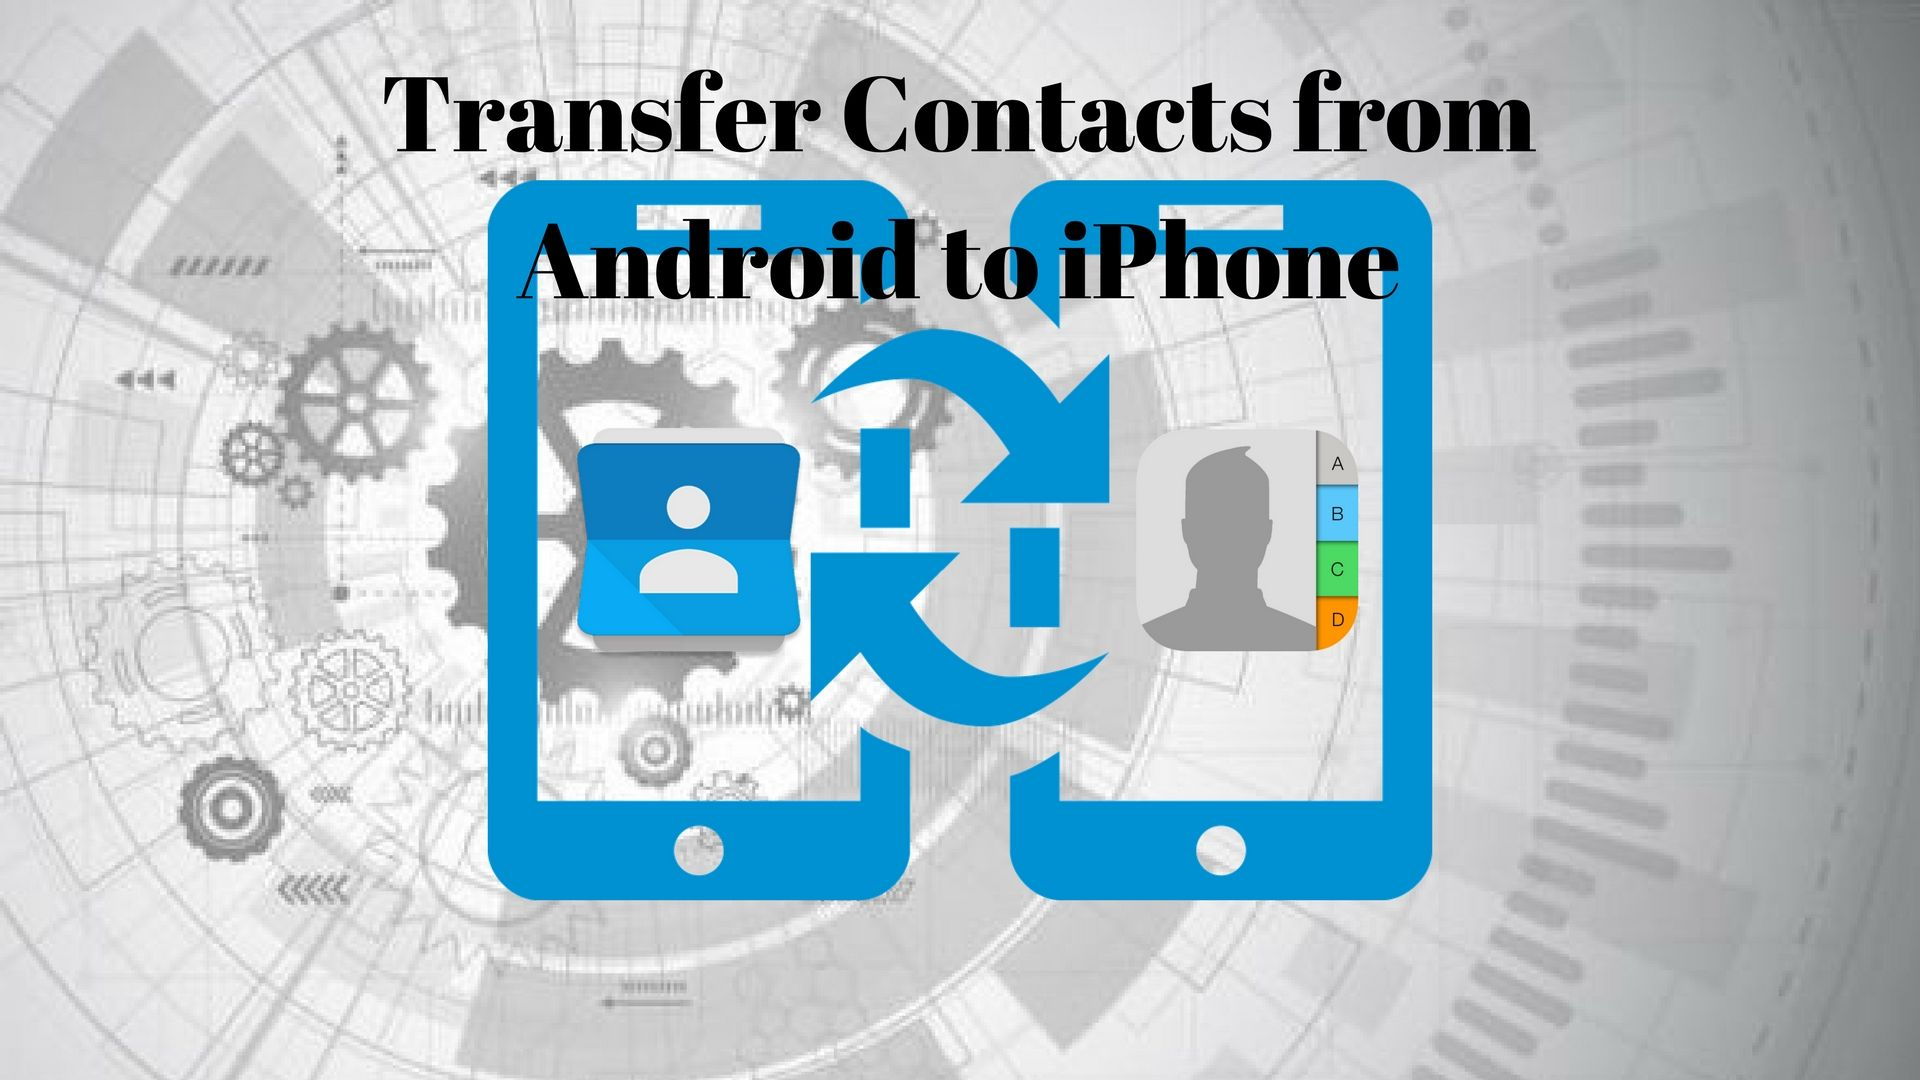 sync contacts from android to iphone transfer contacts from android to iphone quicktip 19465